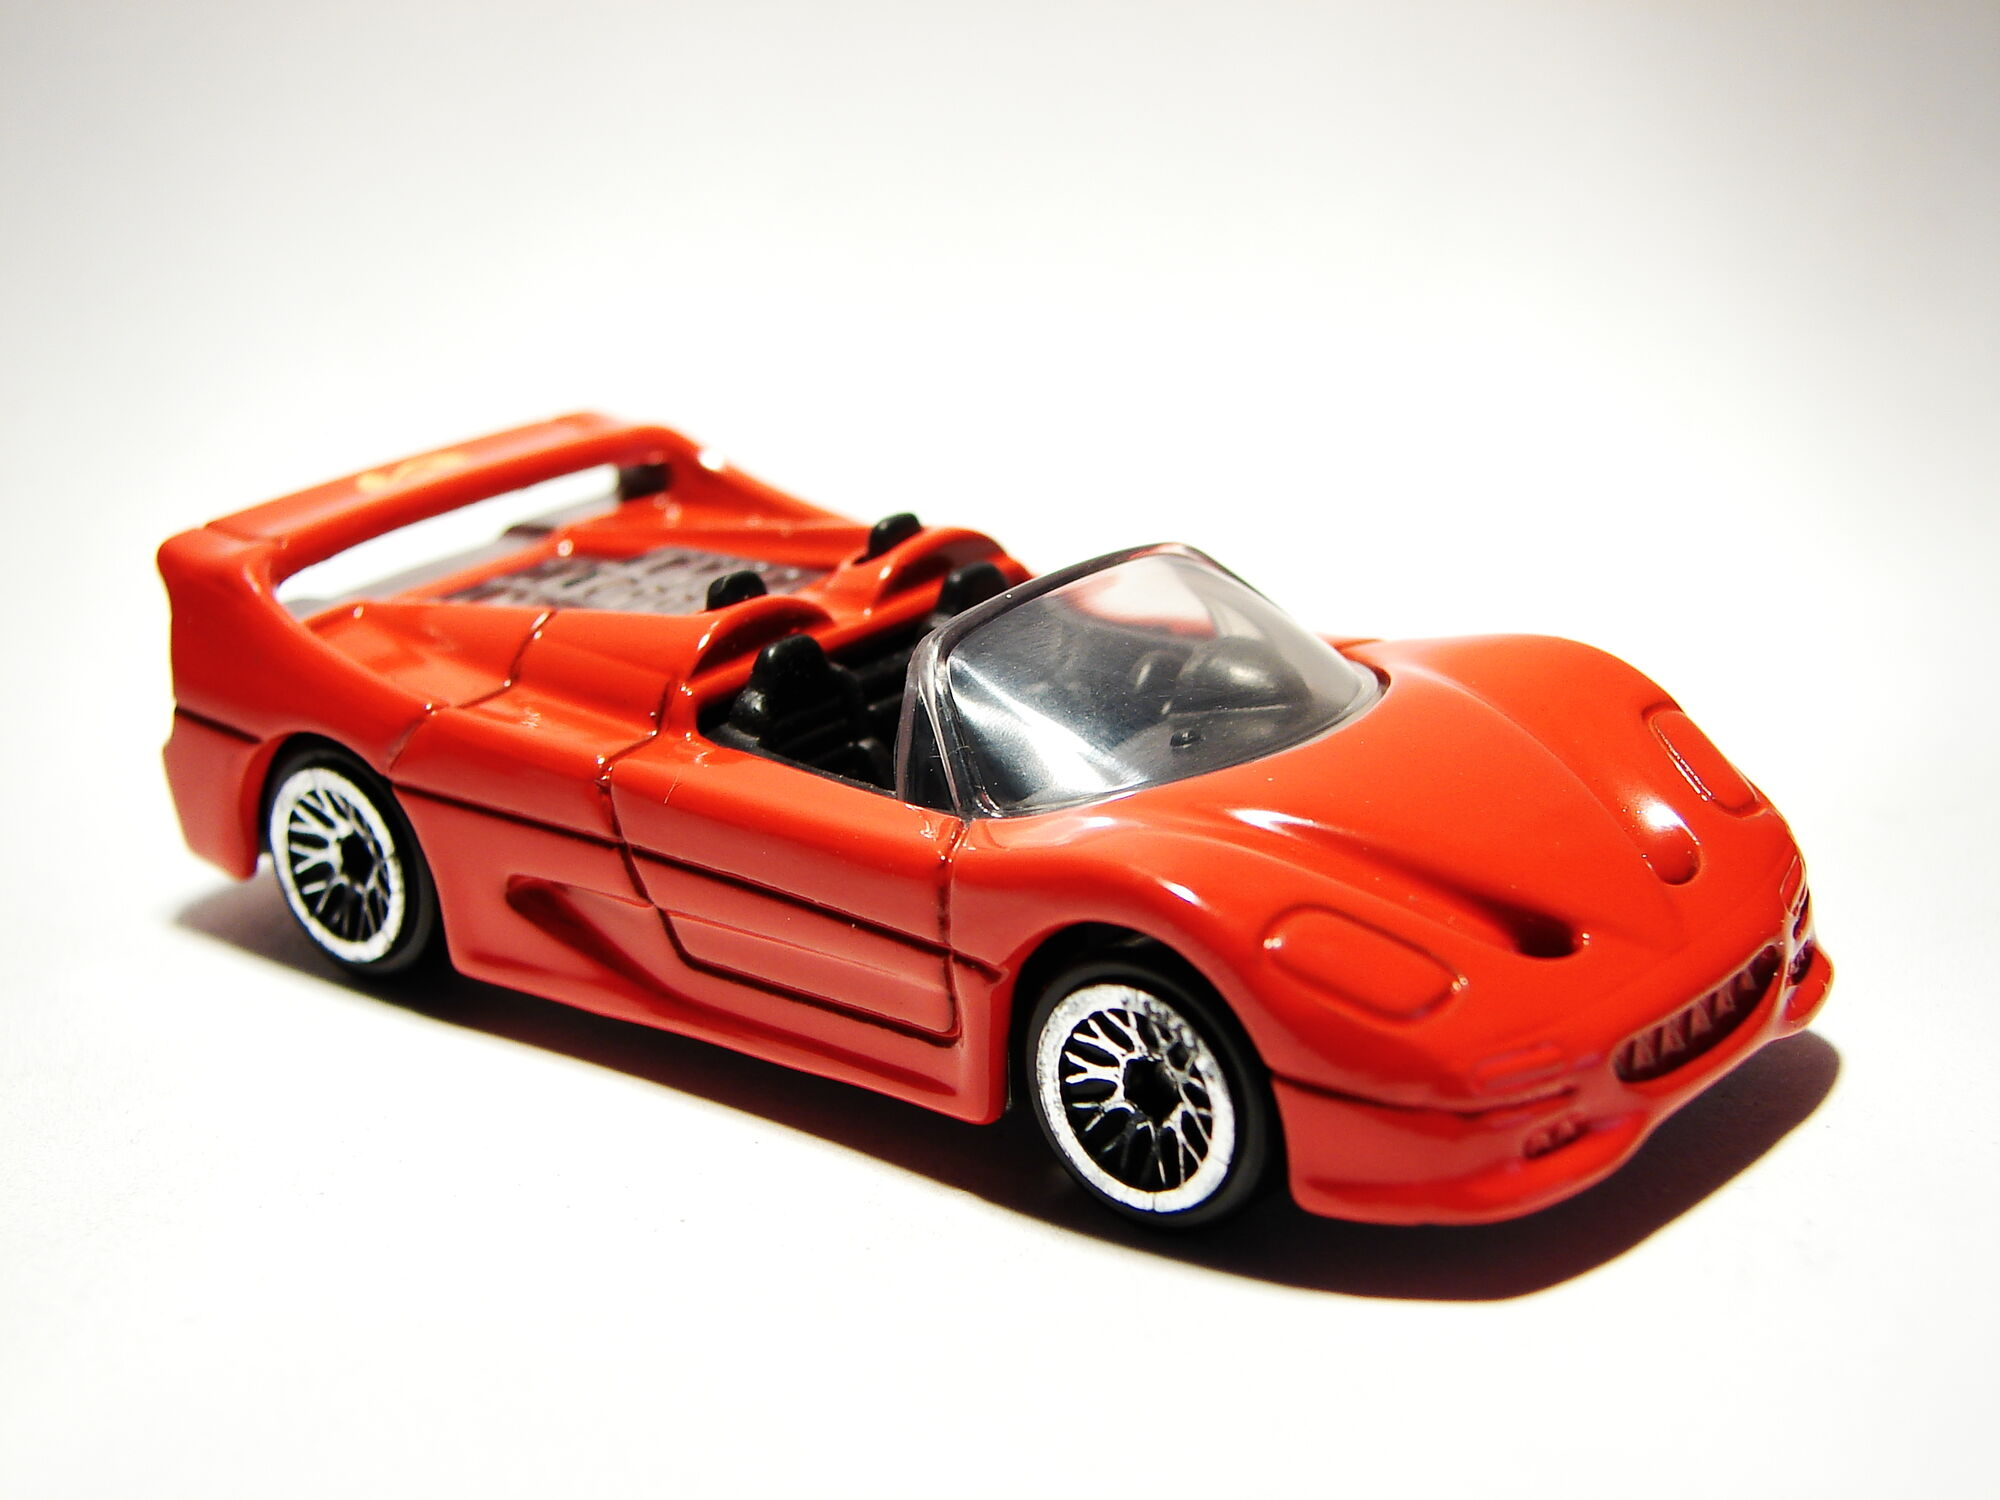 Ferrari f50 spider hot wheels wiki fandom powered by wikia vanachro Image collections